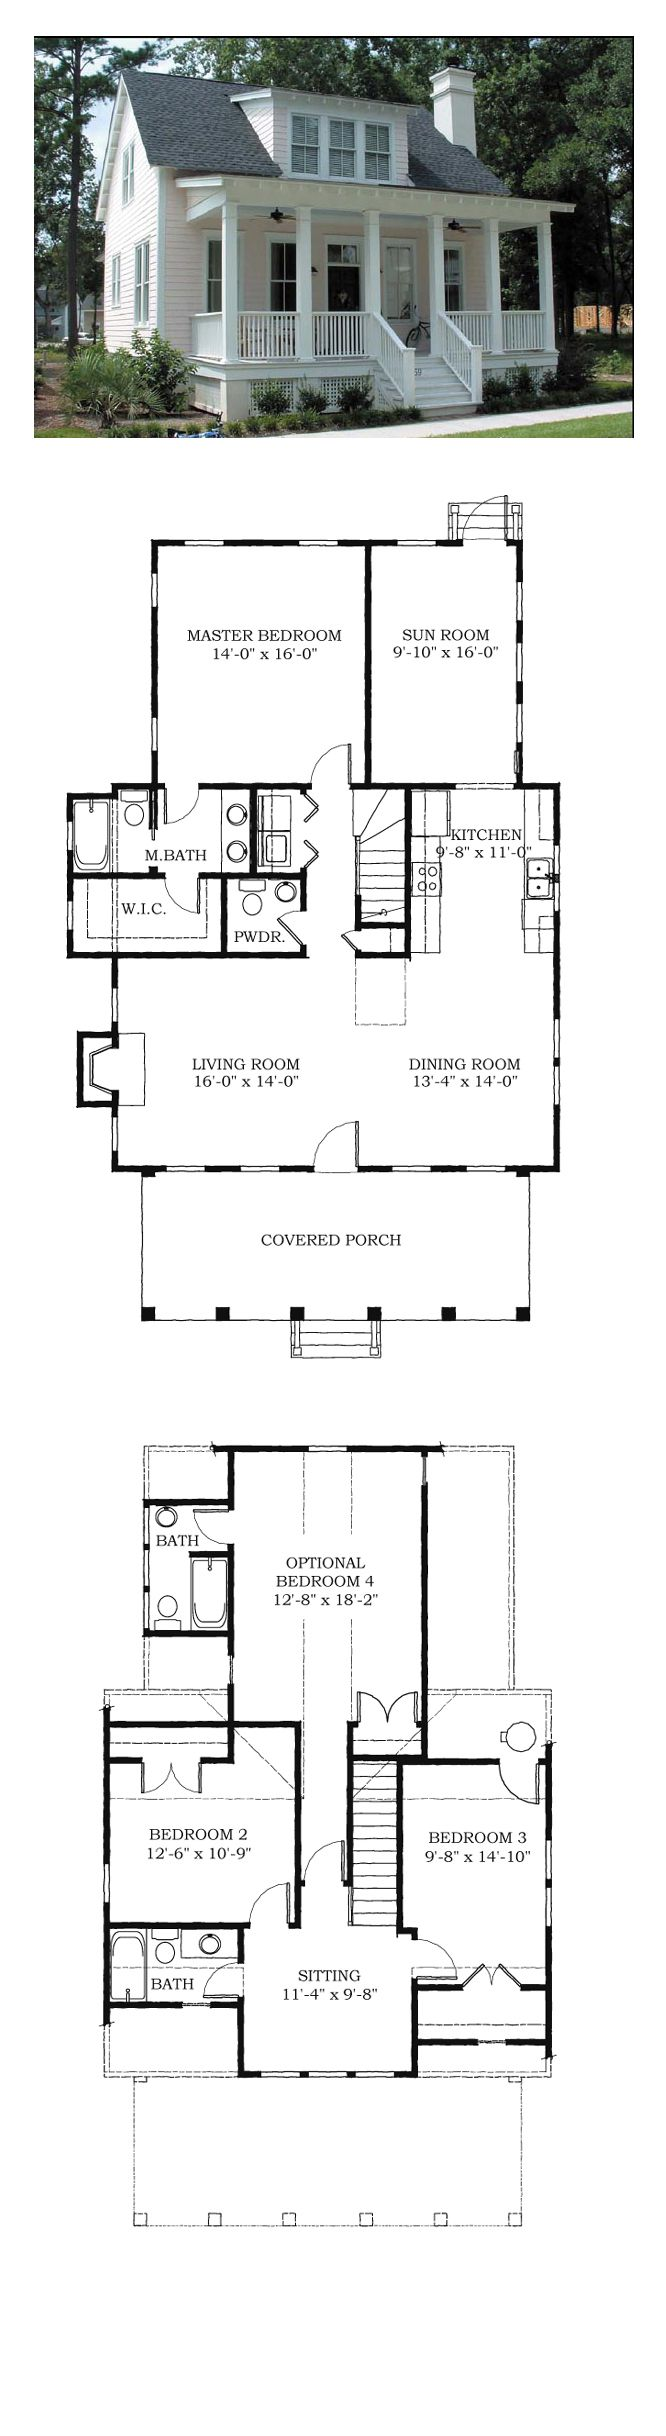 House Plan chp 38703 100 best House plans